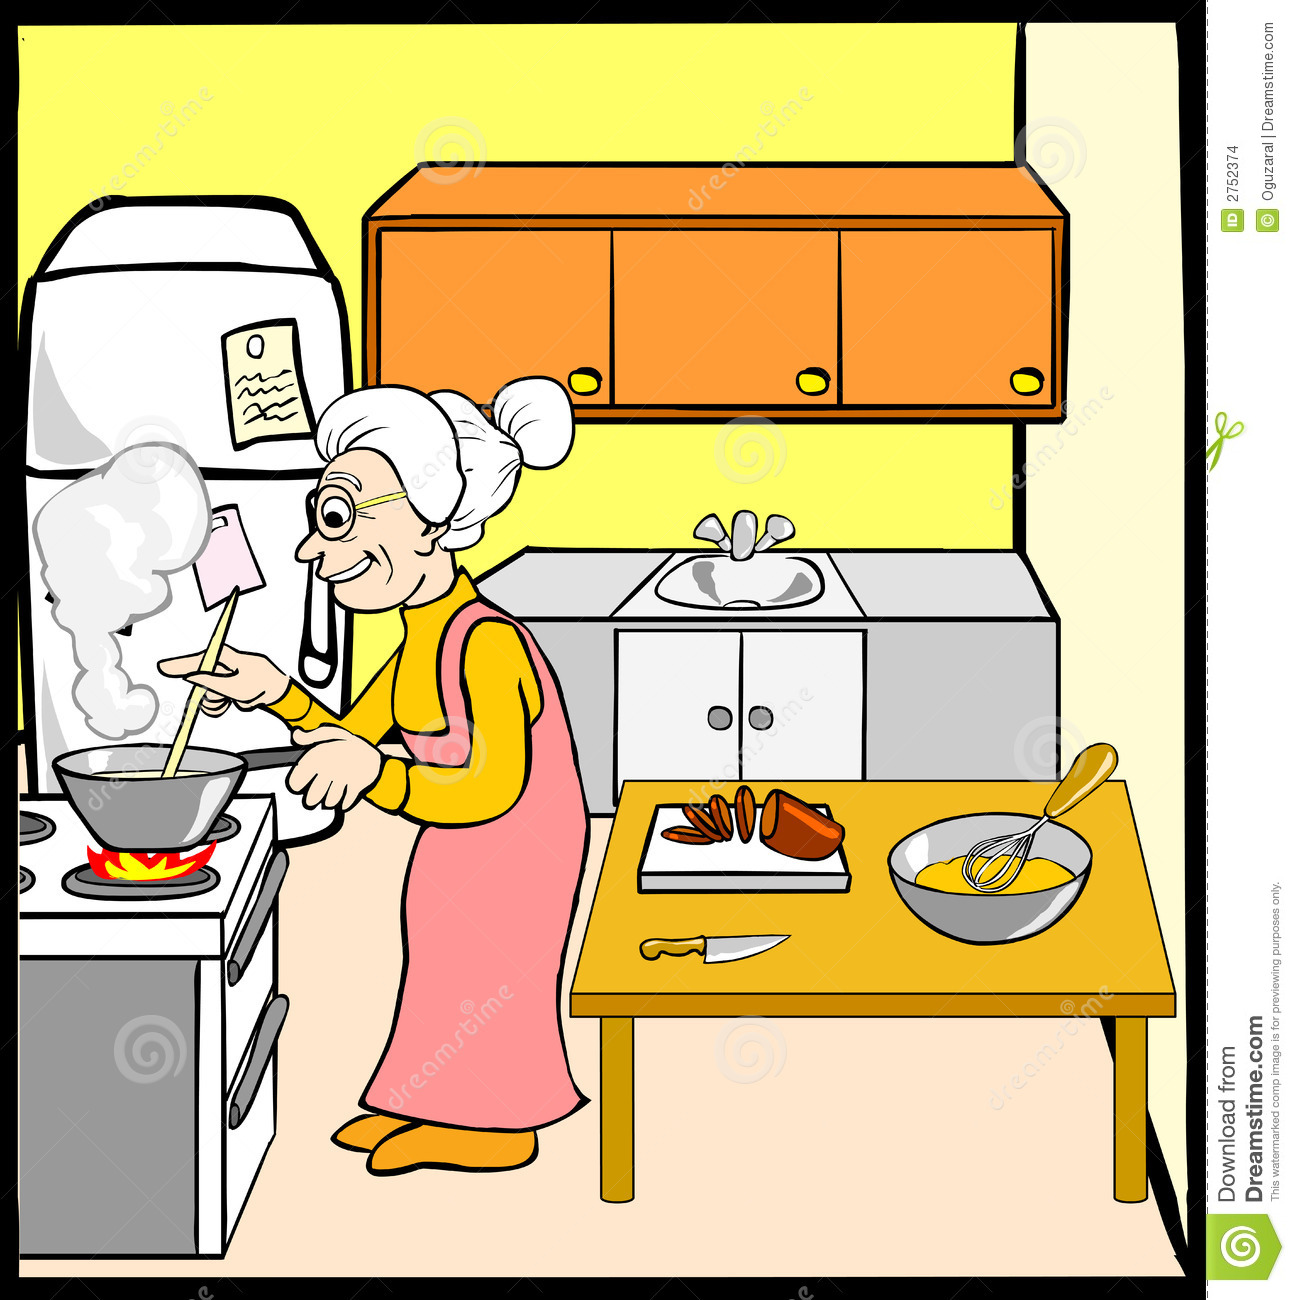 Clipart kitchen kichen. Many interesting cliparts clipartpost